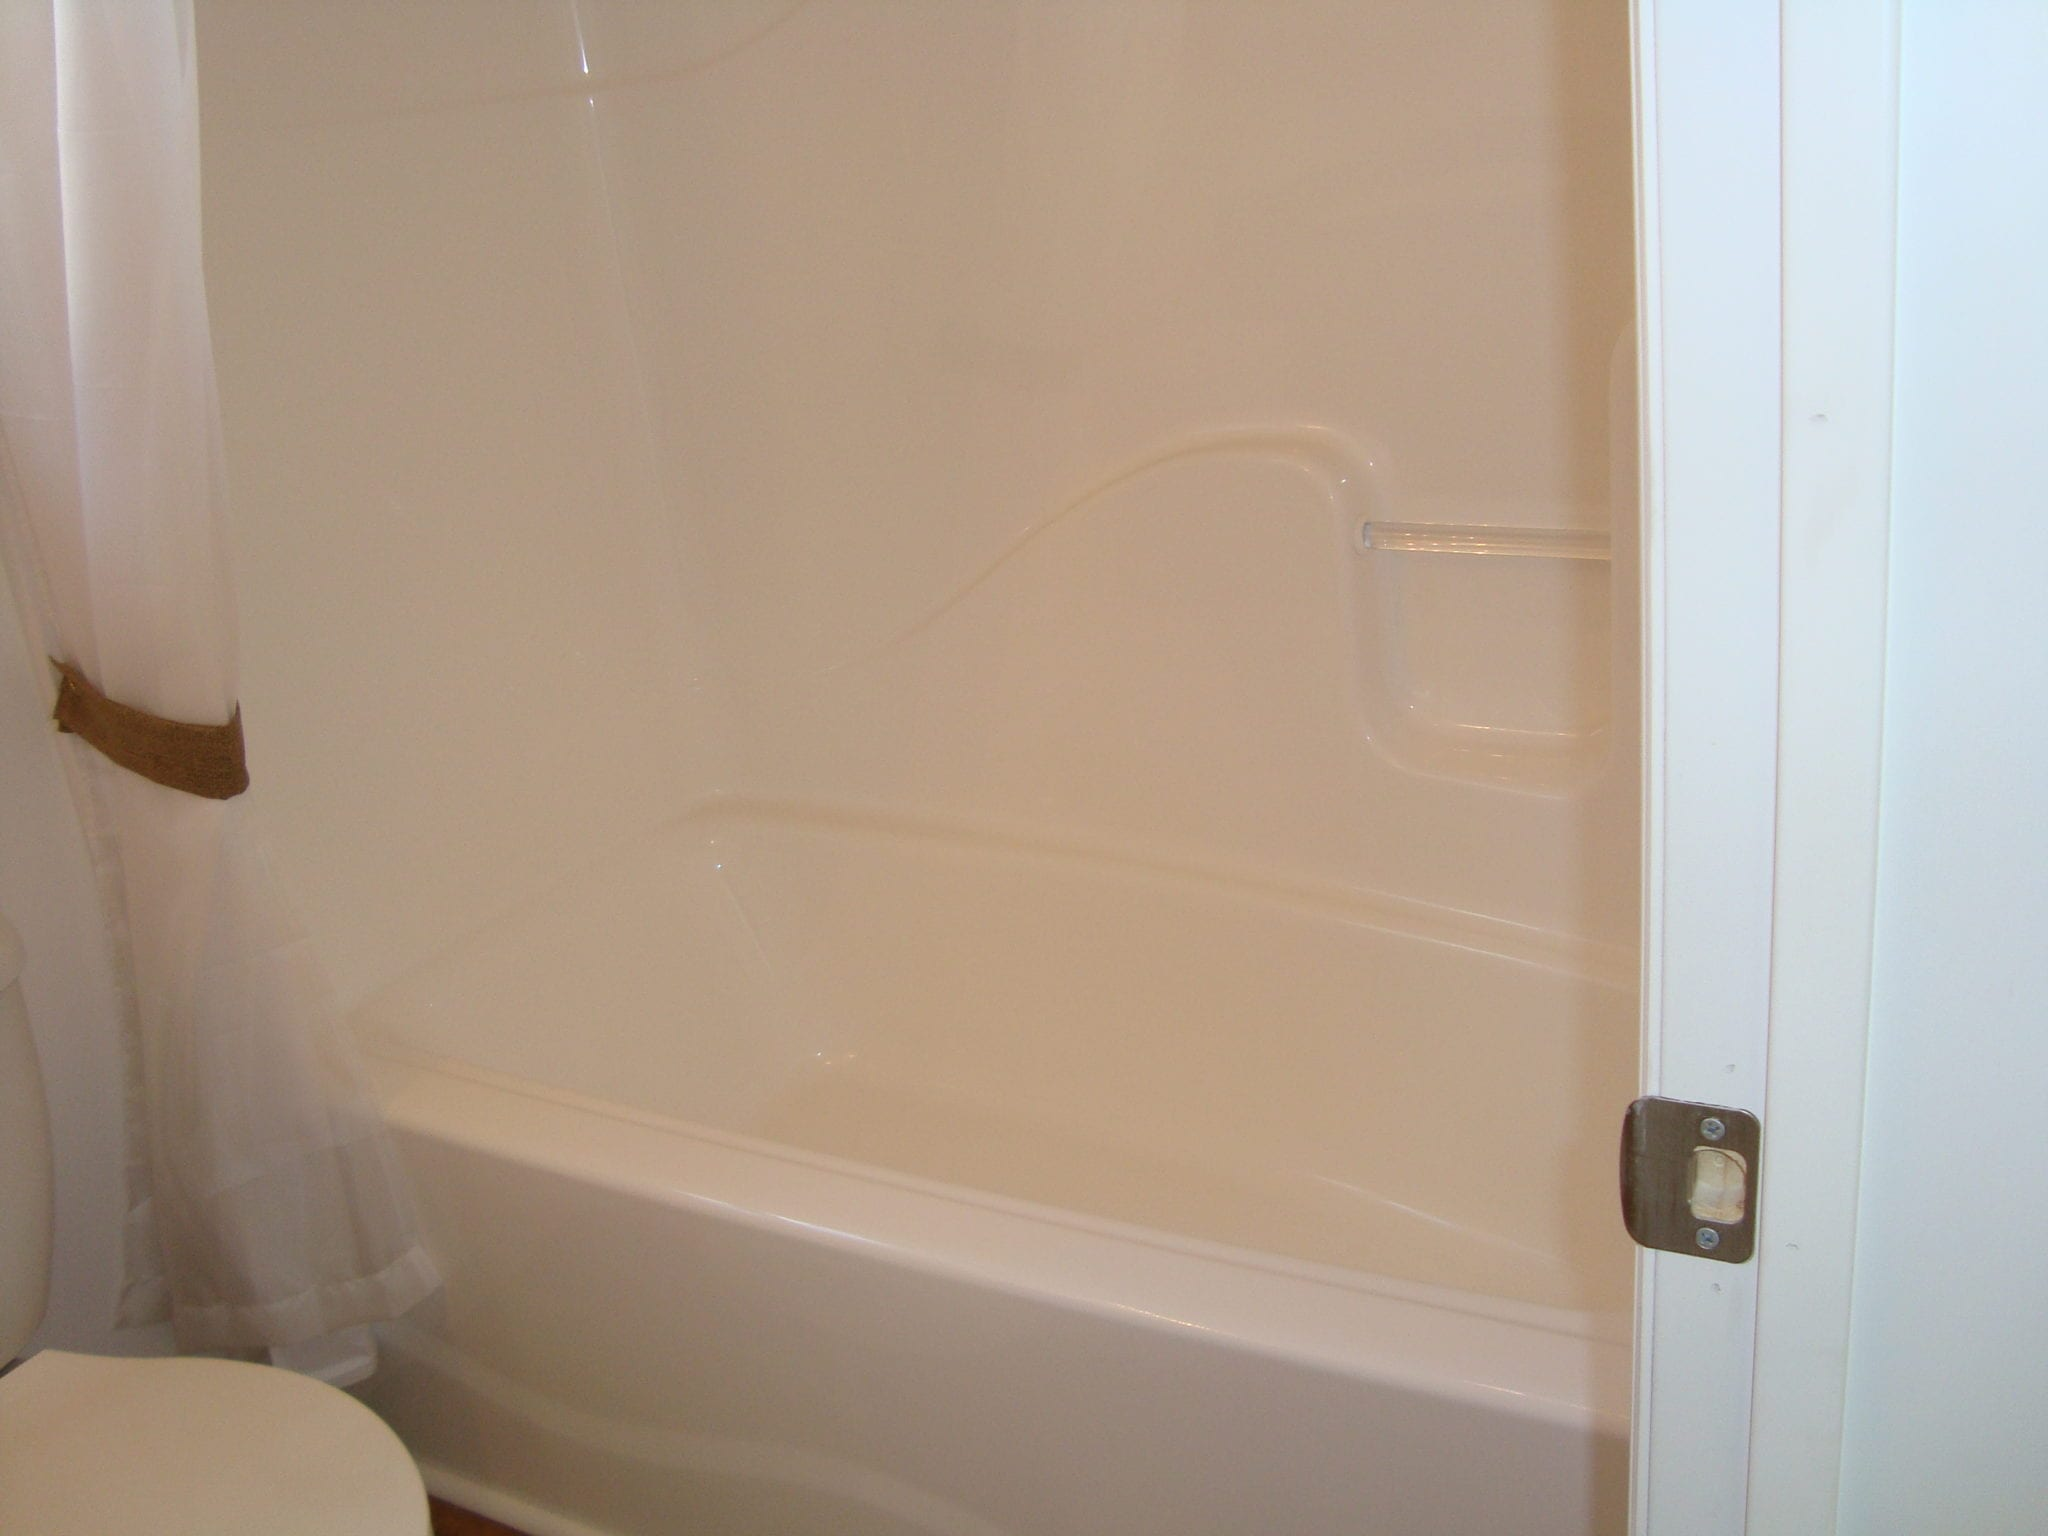 One-Piece Fiberglass Tub/Shower | State Manufactured Homes, Inc.